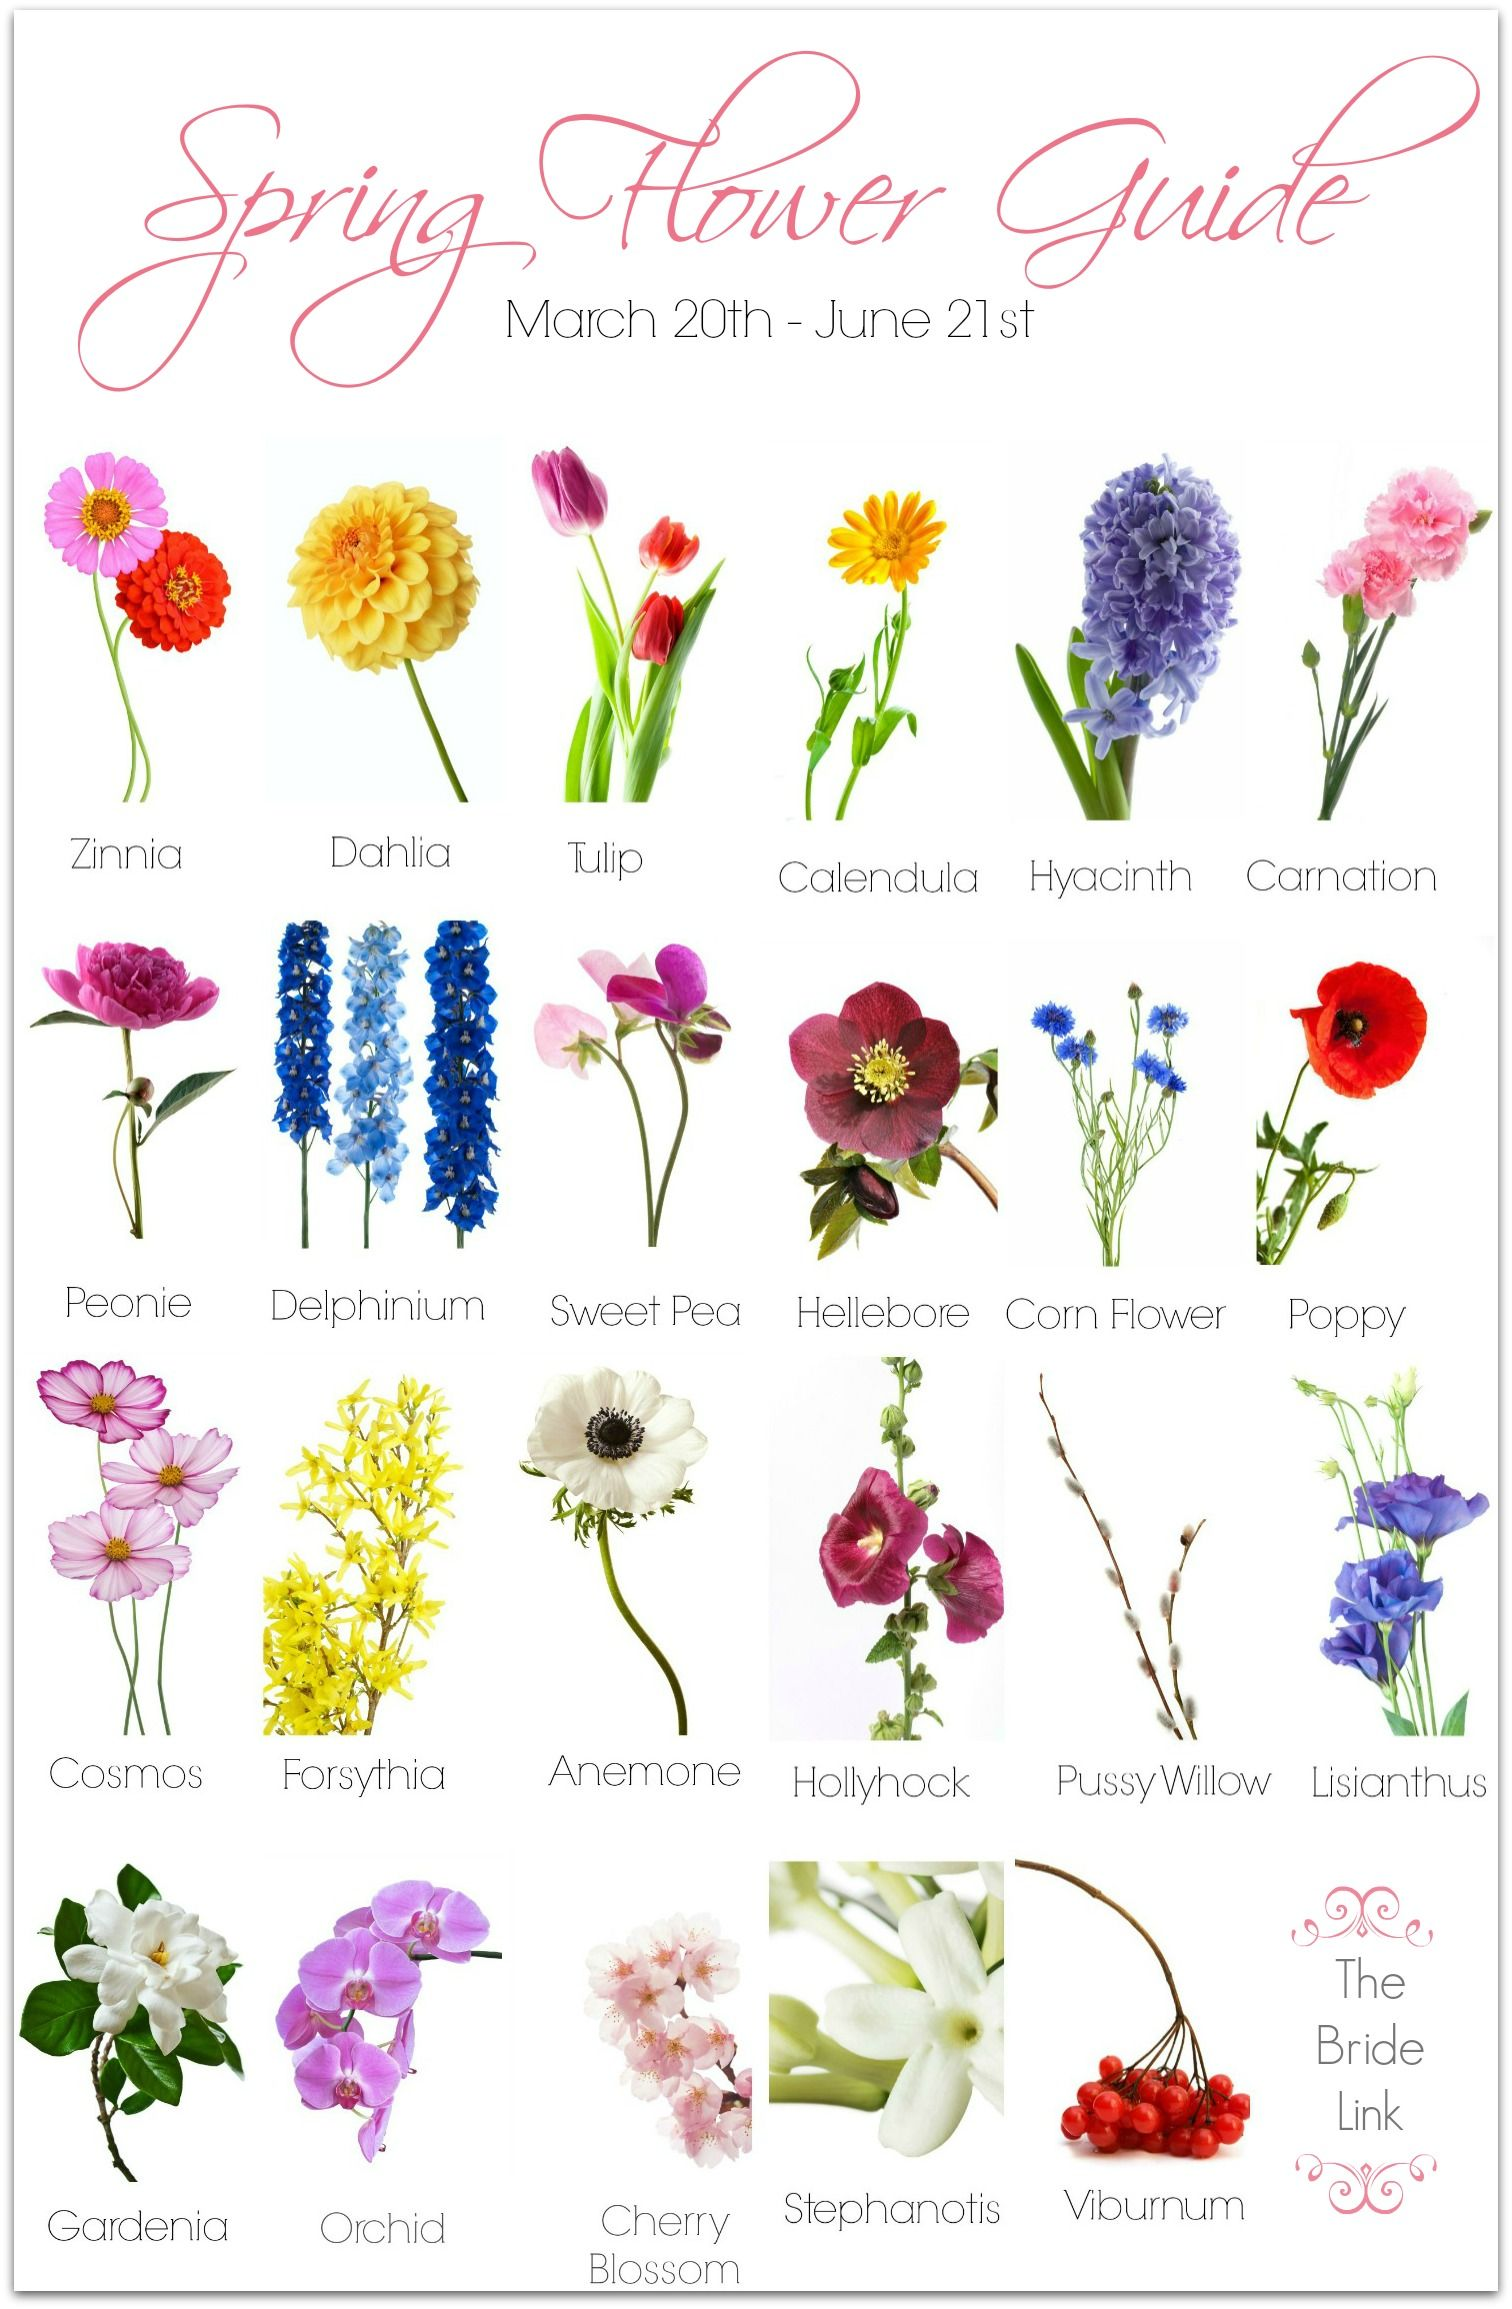 Spring wedding flower guide spring wedding flowers spring spring wedding flower guide mightylinksfo Images